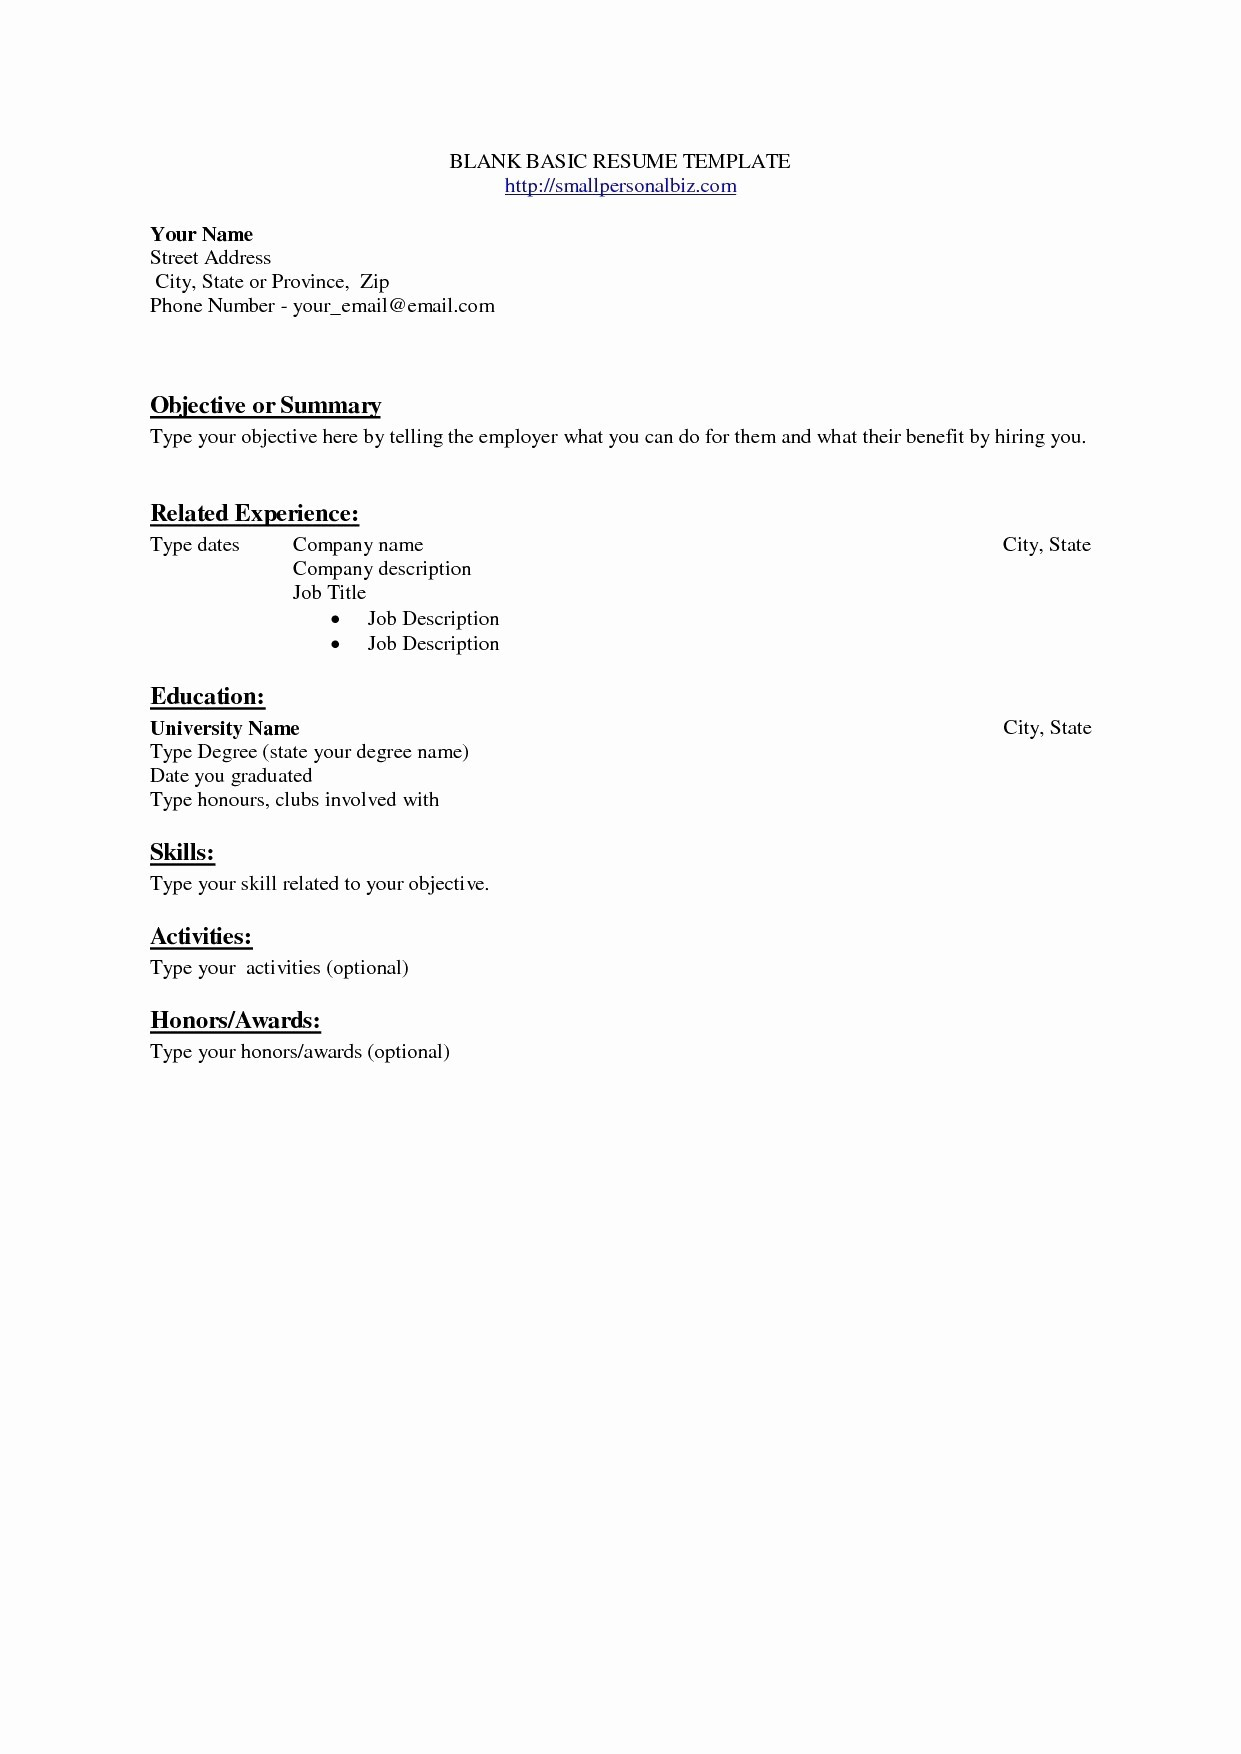 Skills Based Resume Template - Skill for Resume Best New Awesome Examples A Good Resume Template